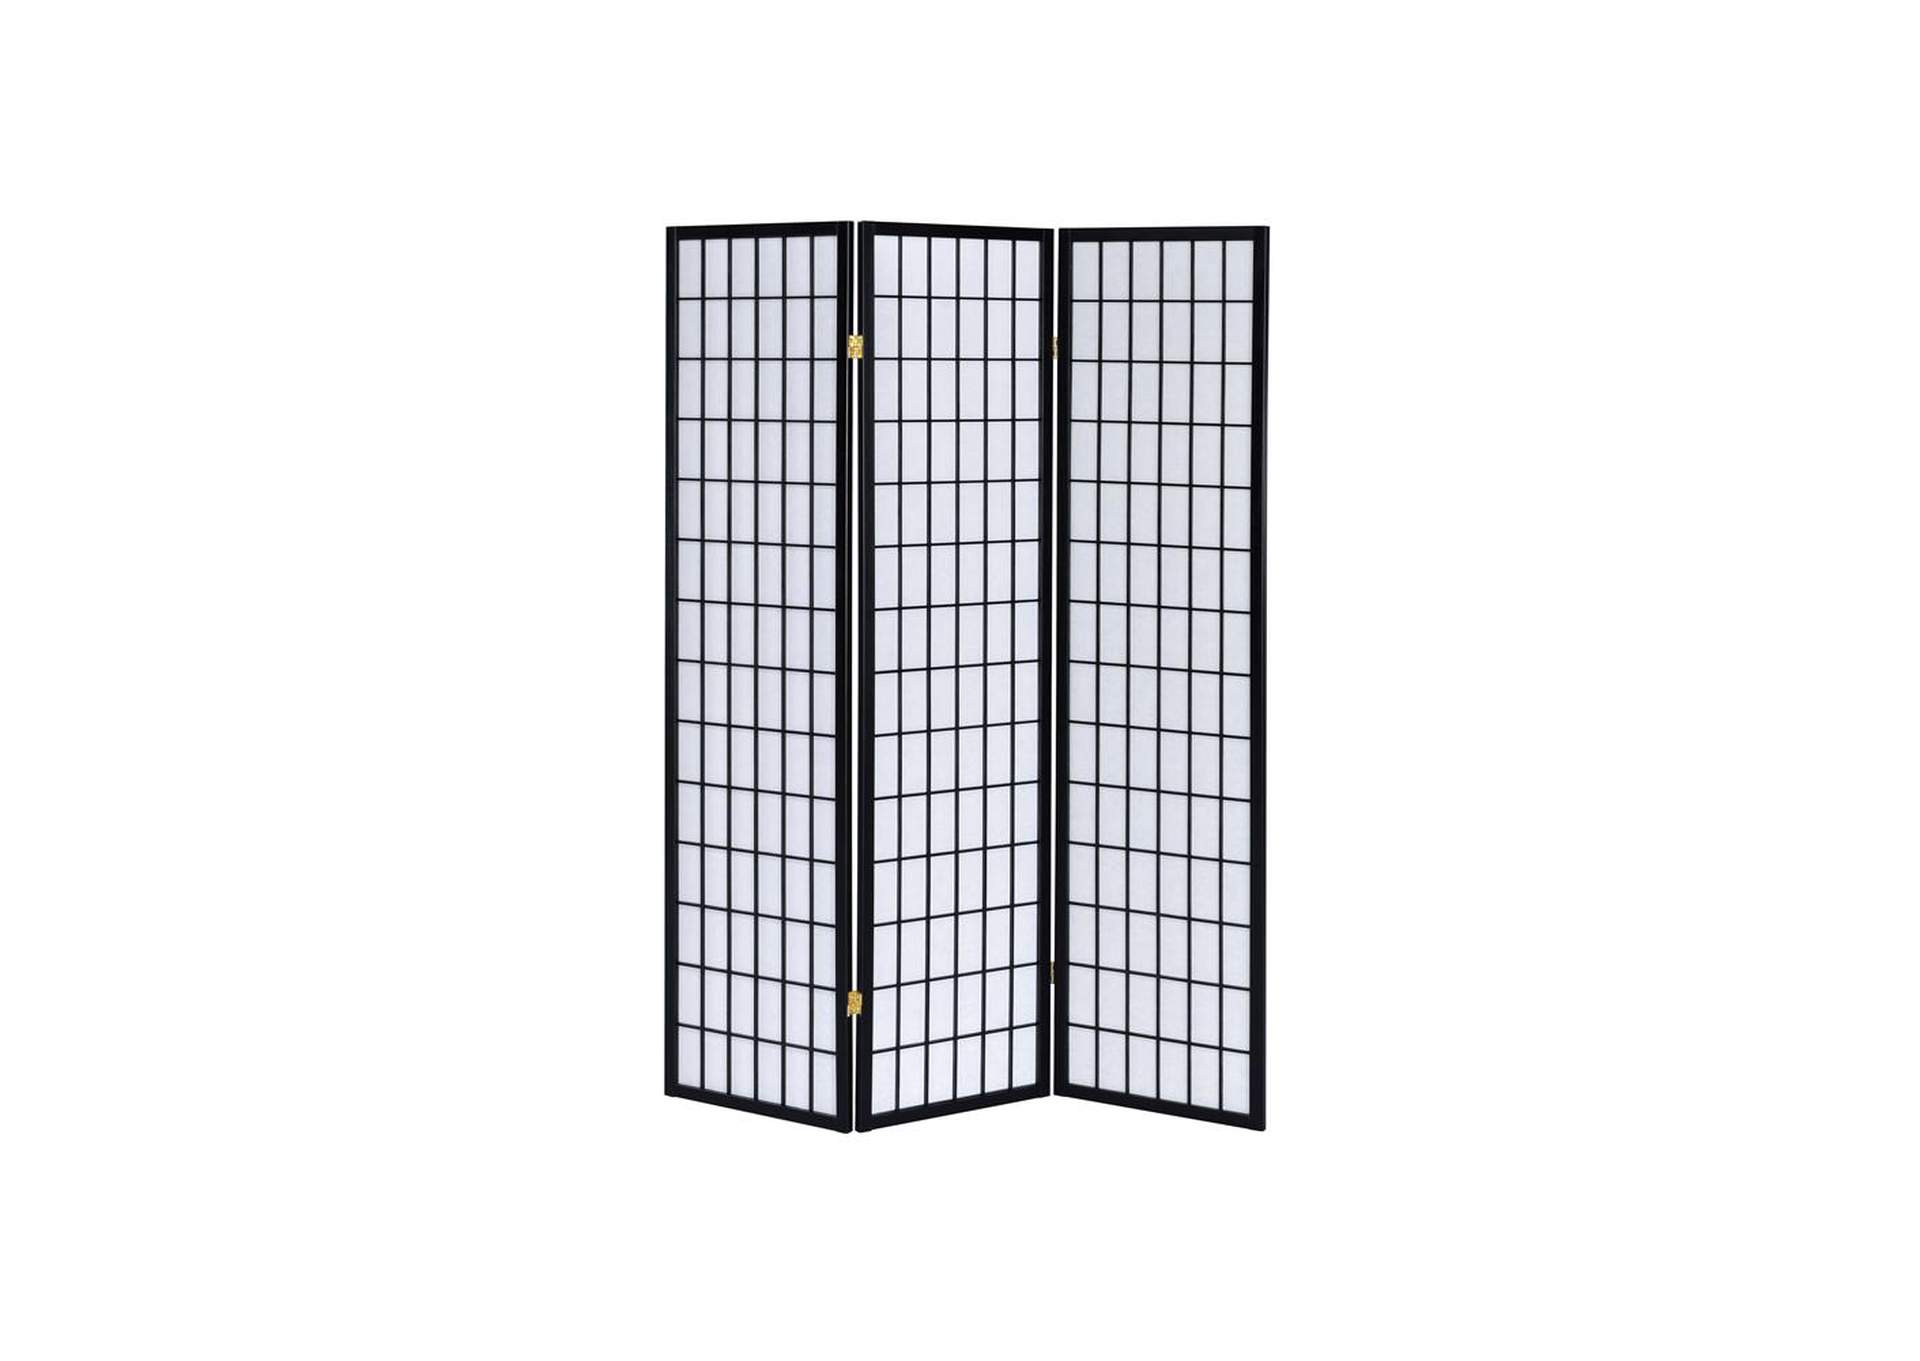 Bombay Transitional Three-Panel Black Folding Screen,Coaster Furniture